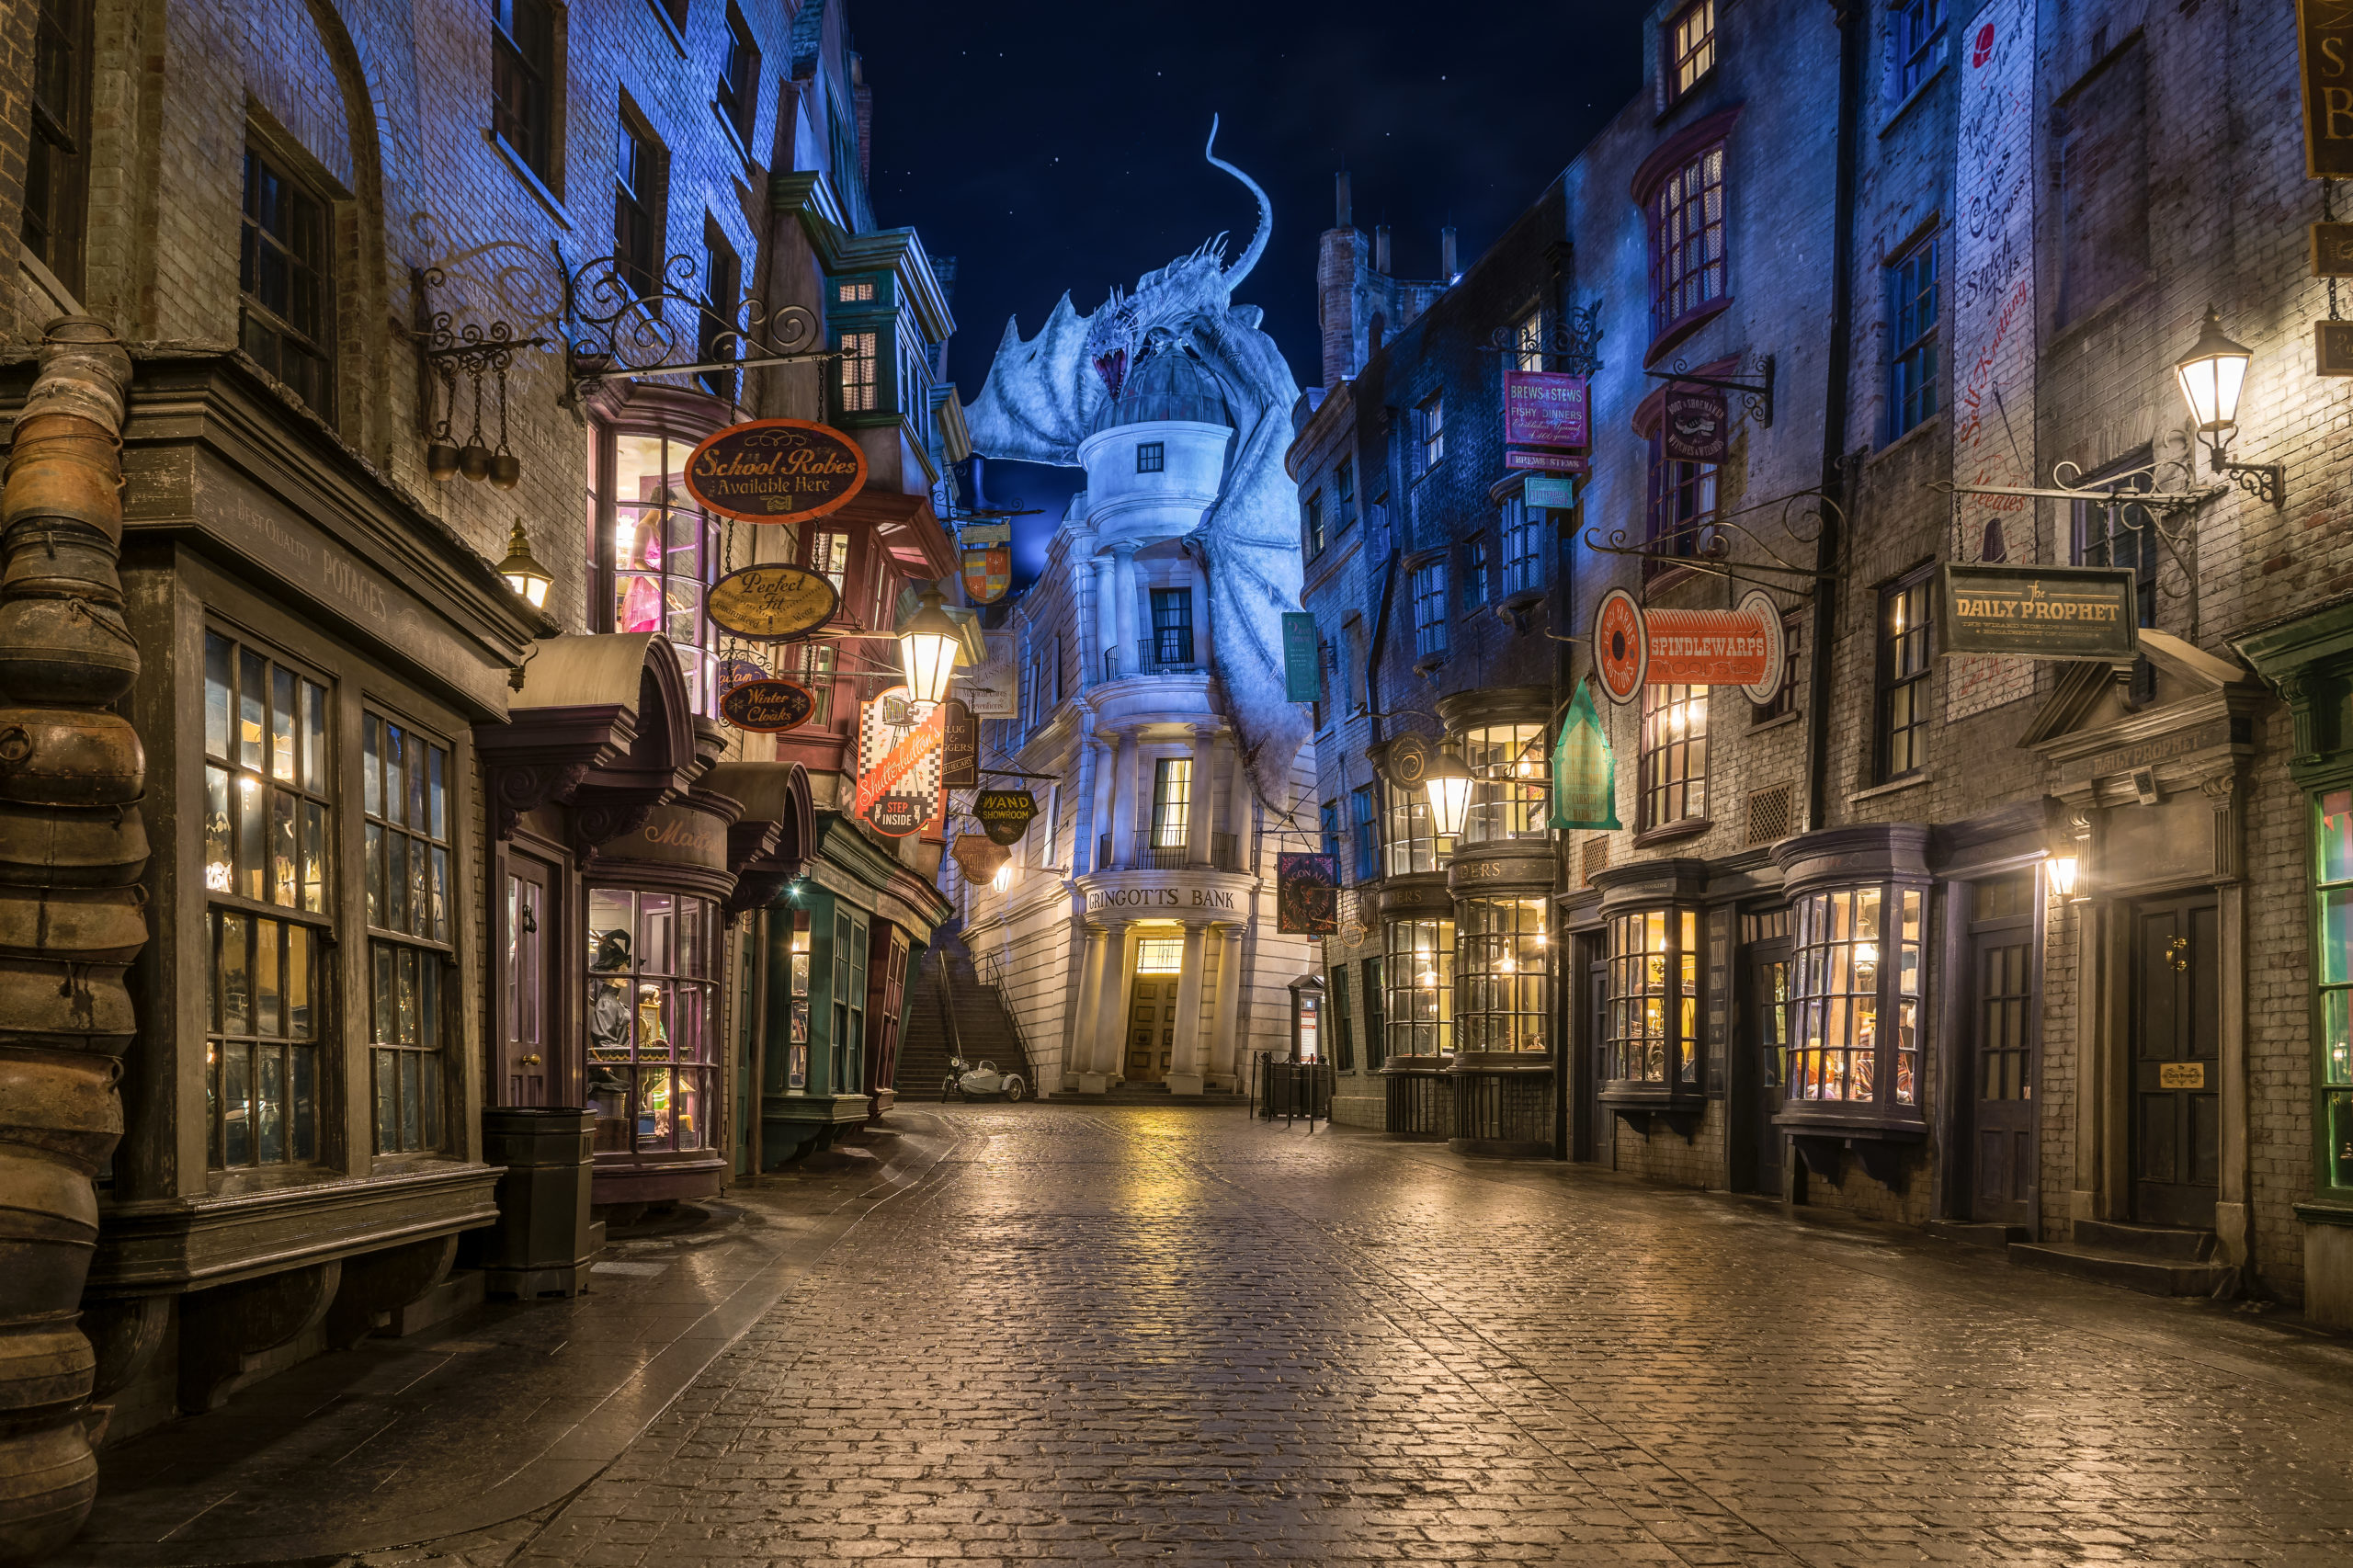 Diagon Alley in The Wizarding World of Harry Potter